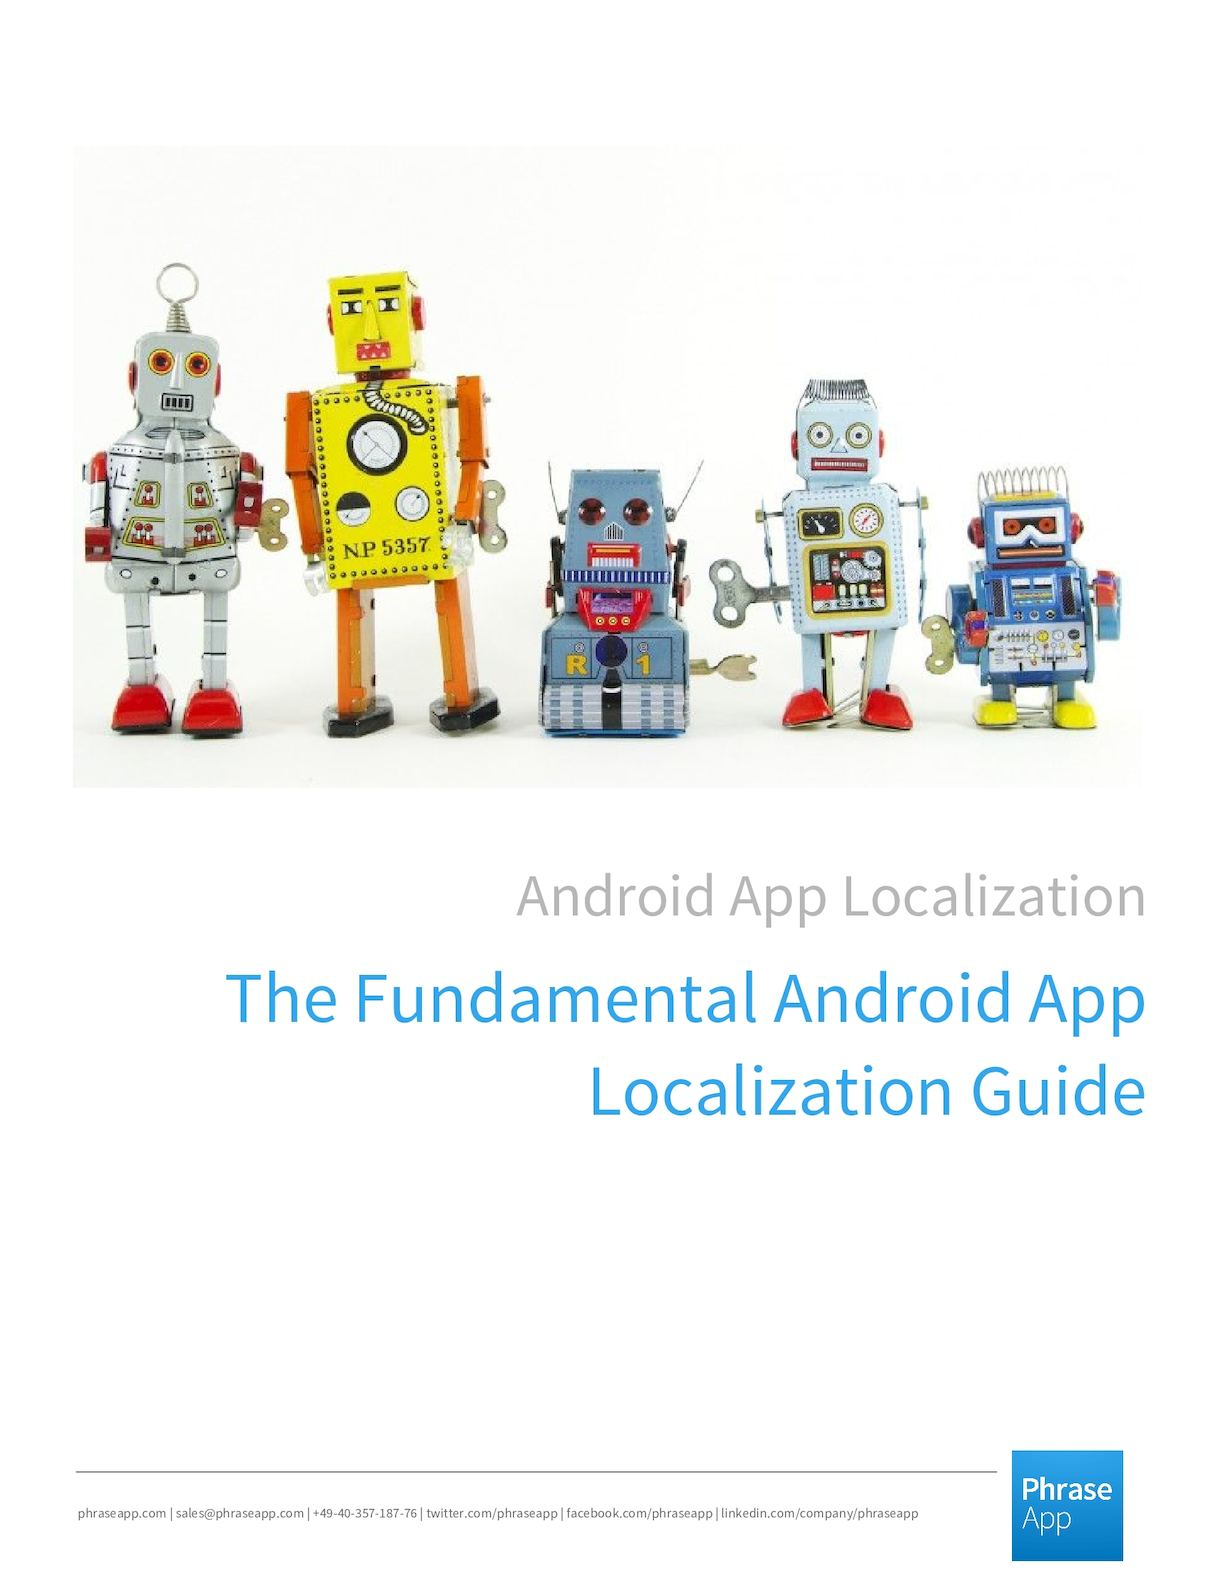 The Fundamental Android App Localization Guide - CALAMEO